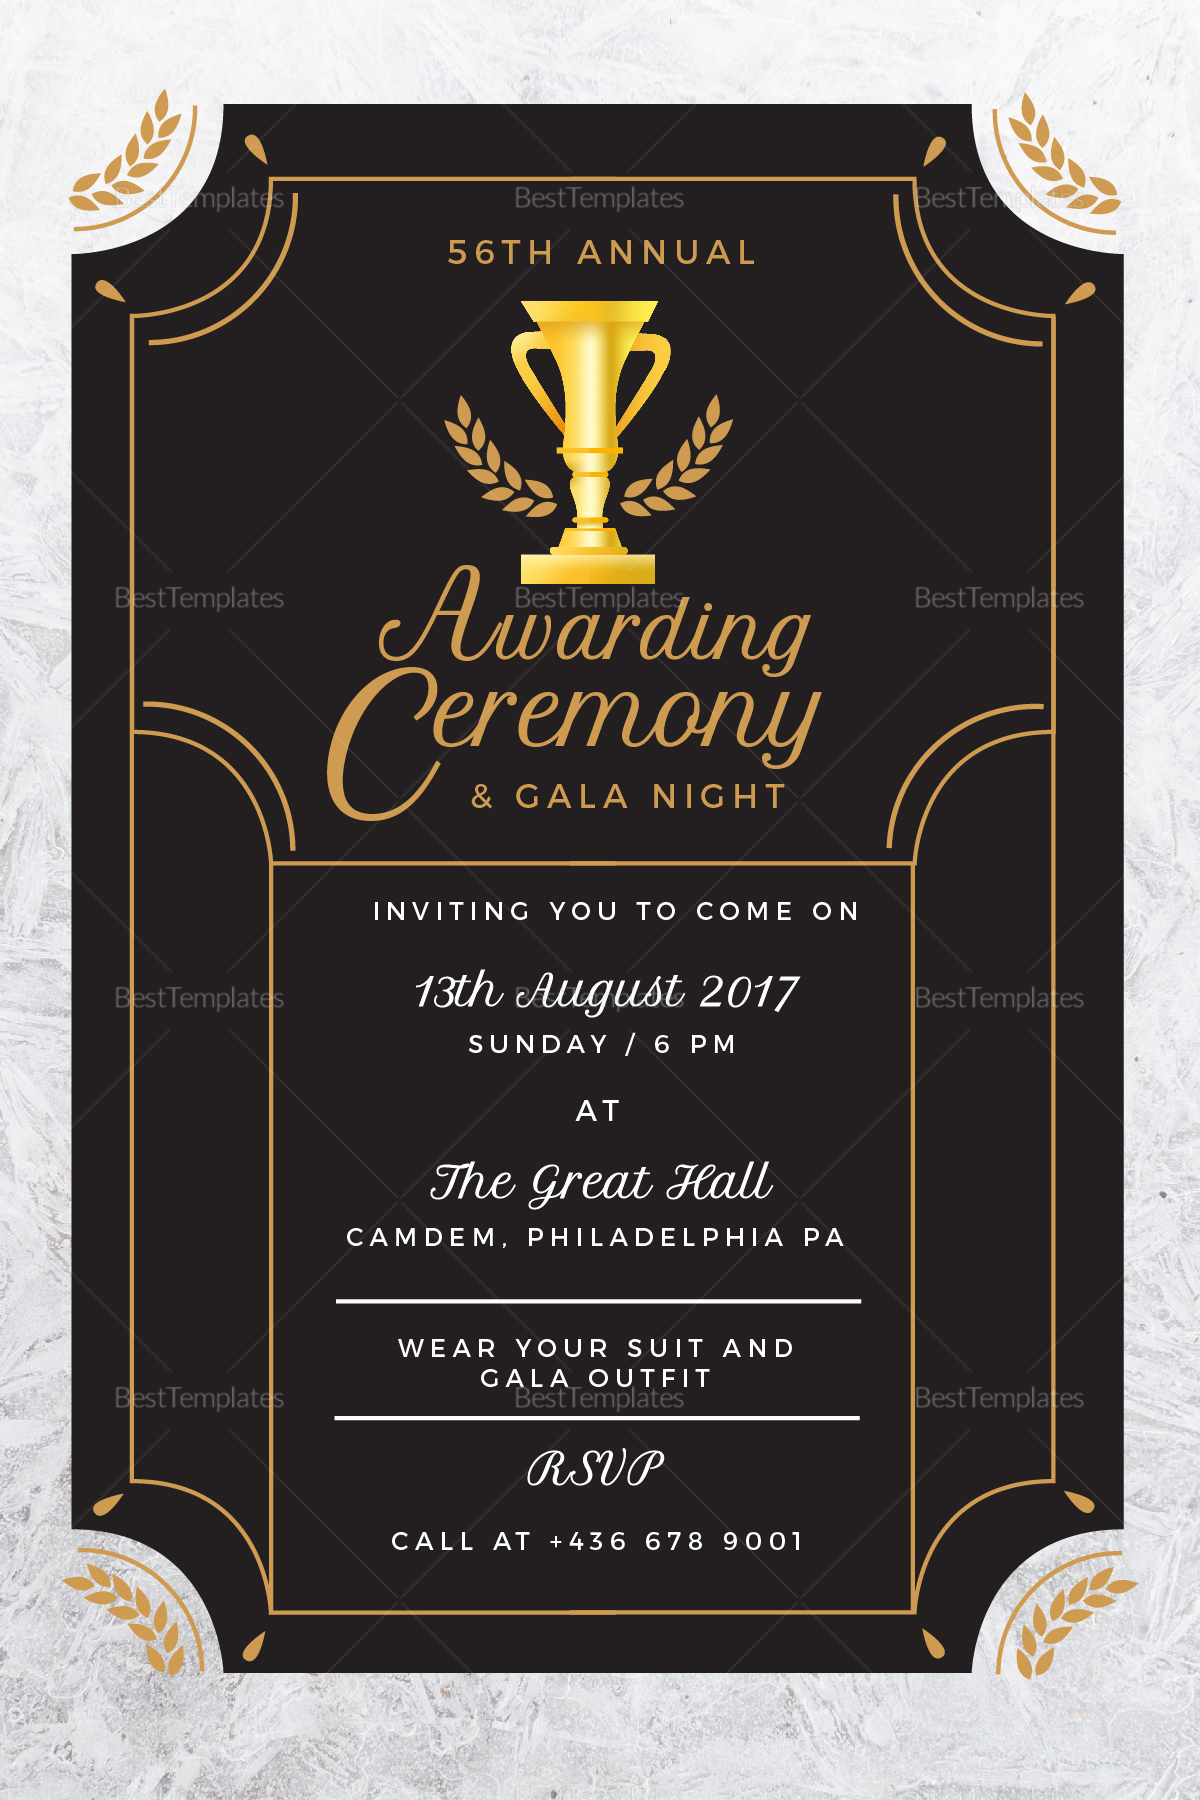 annual award ceremony invitation design template in psd  word  publisher  illustrator  indesign